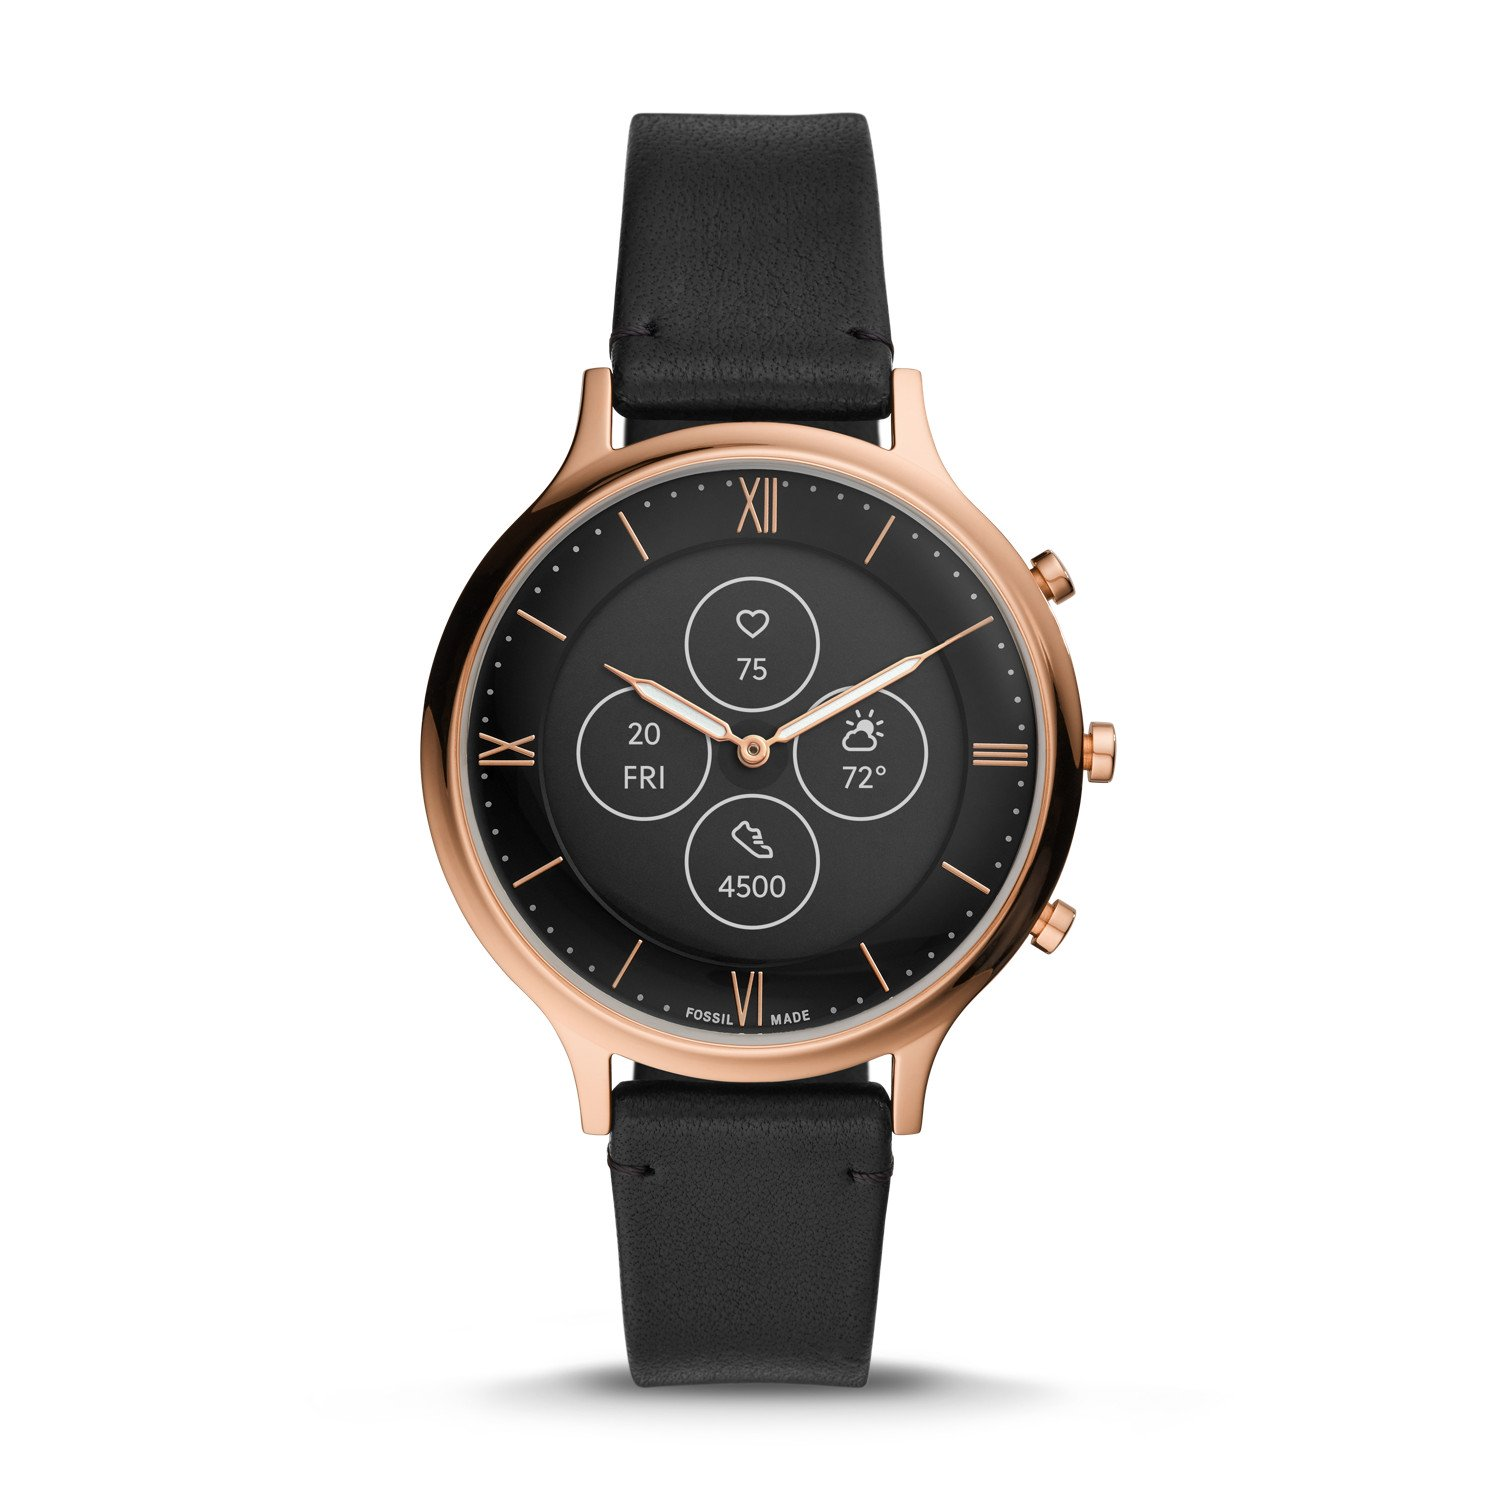 Fossil HR hybrid watches feature always-on display ...